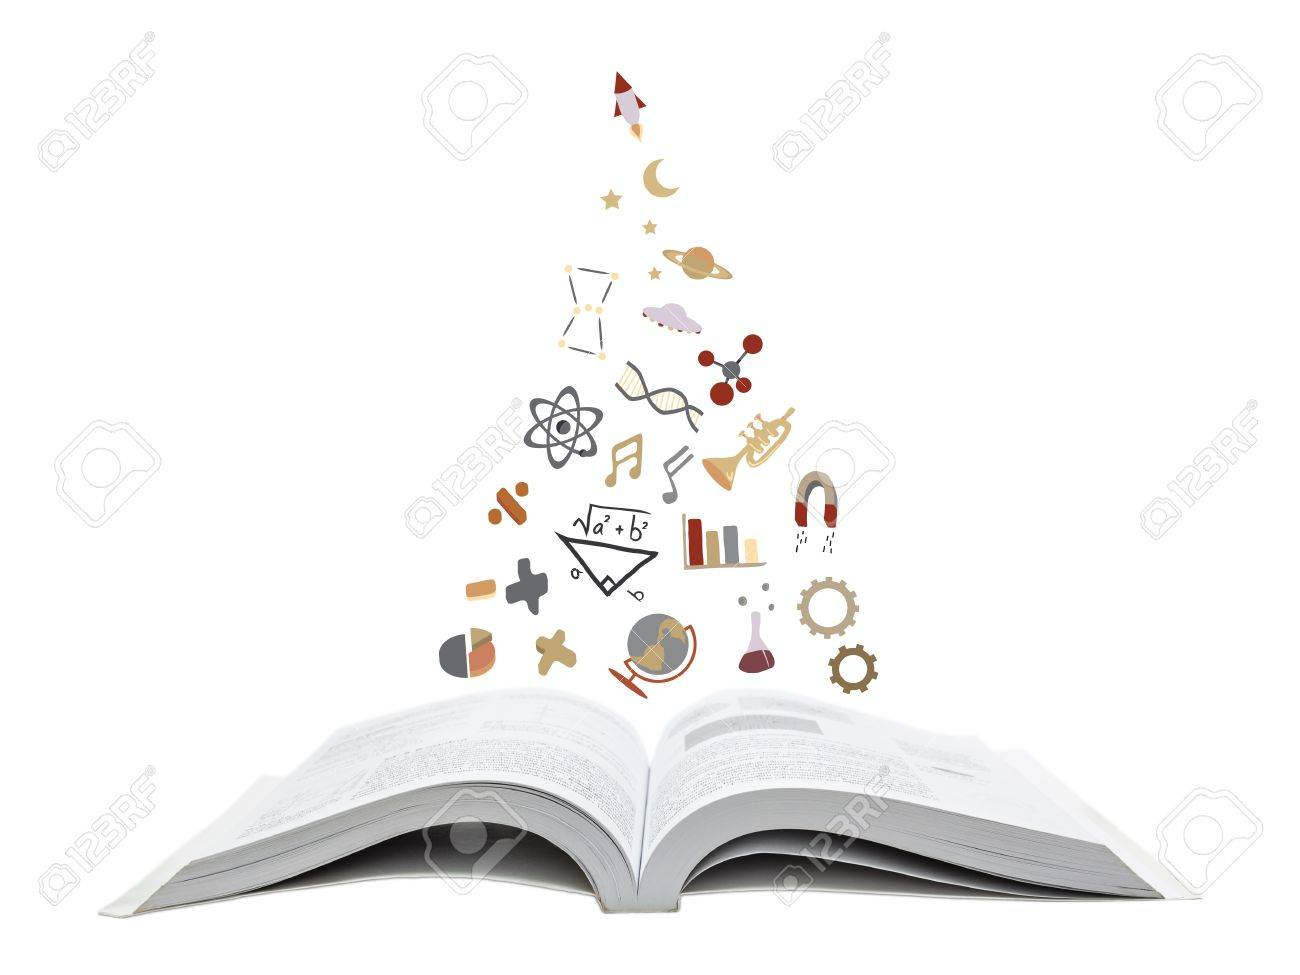 Symbols of knowledge in many branches floating from a book Stock Photo - 17755799